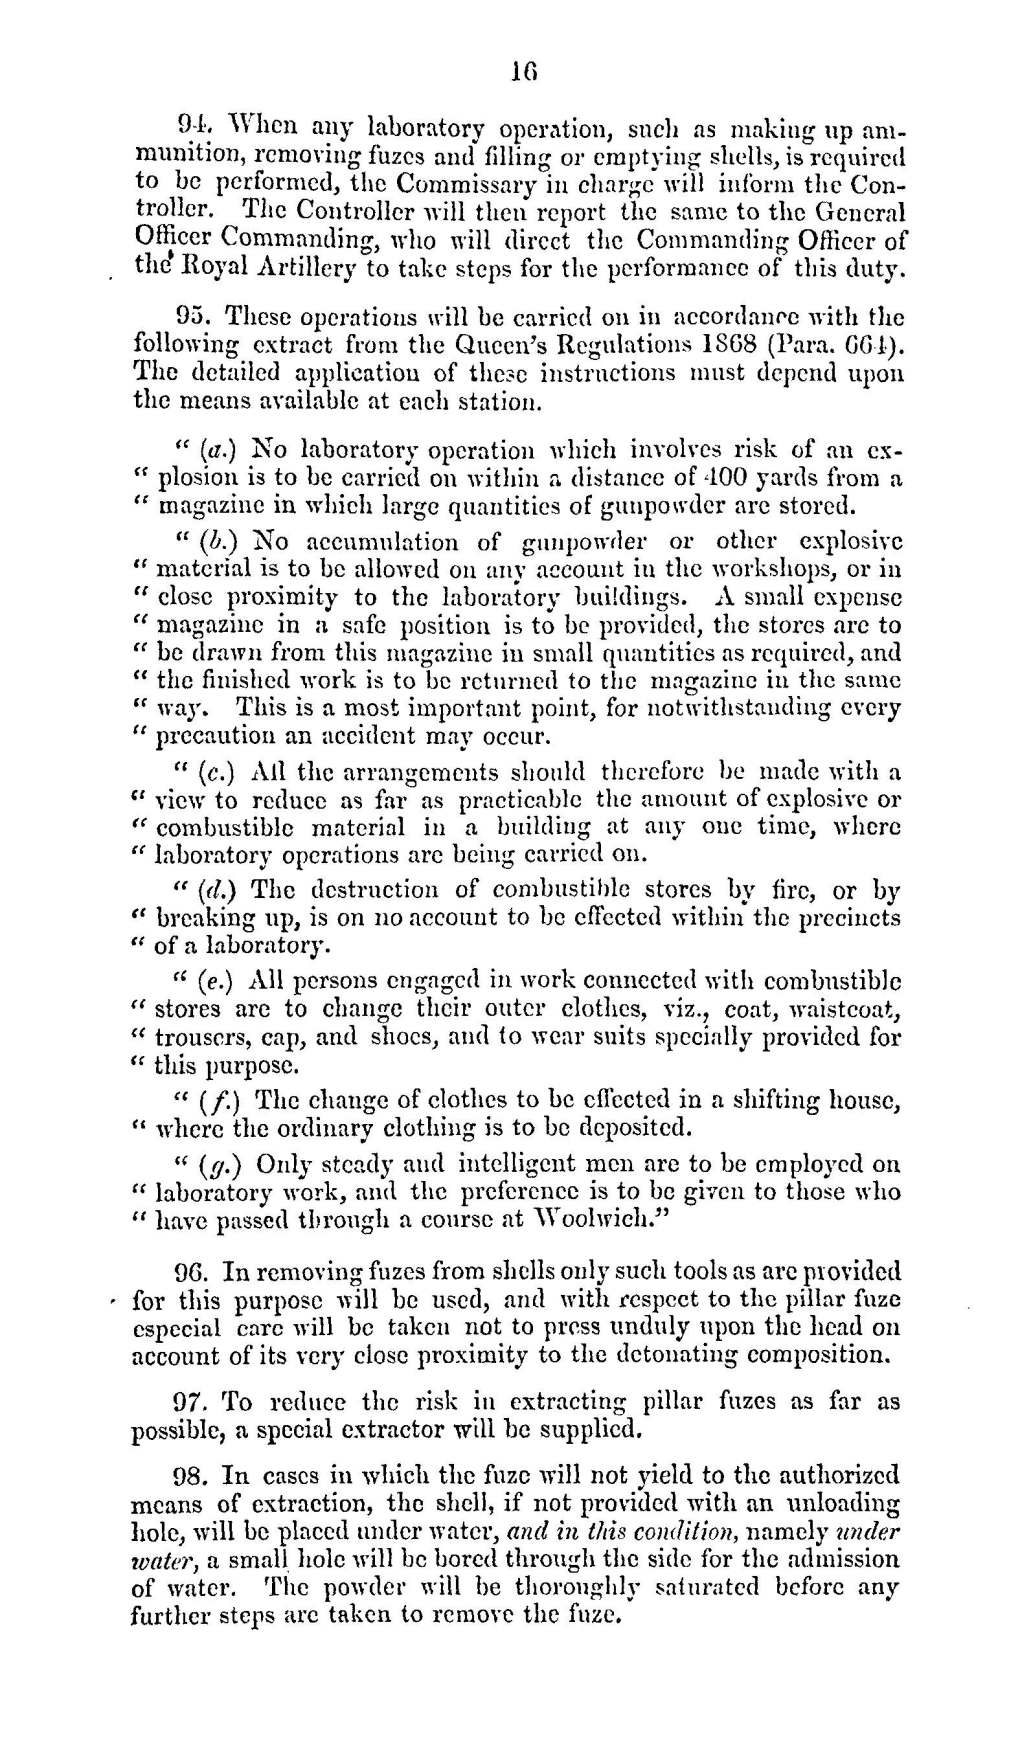 gunpowder regs_Page_16